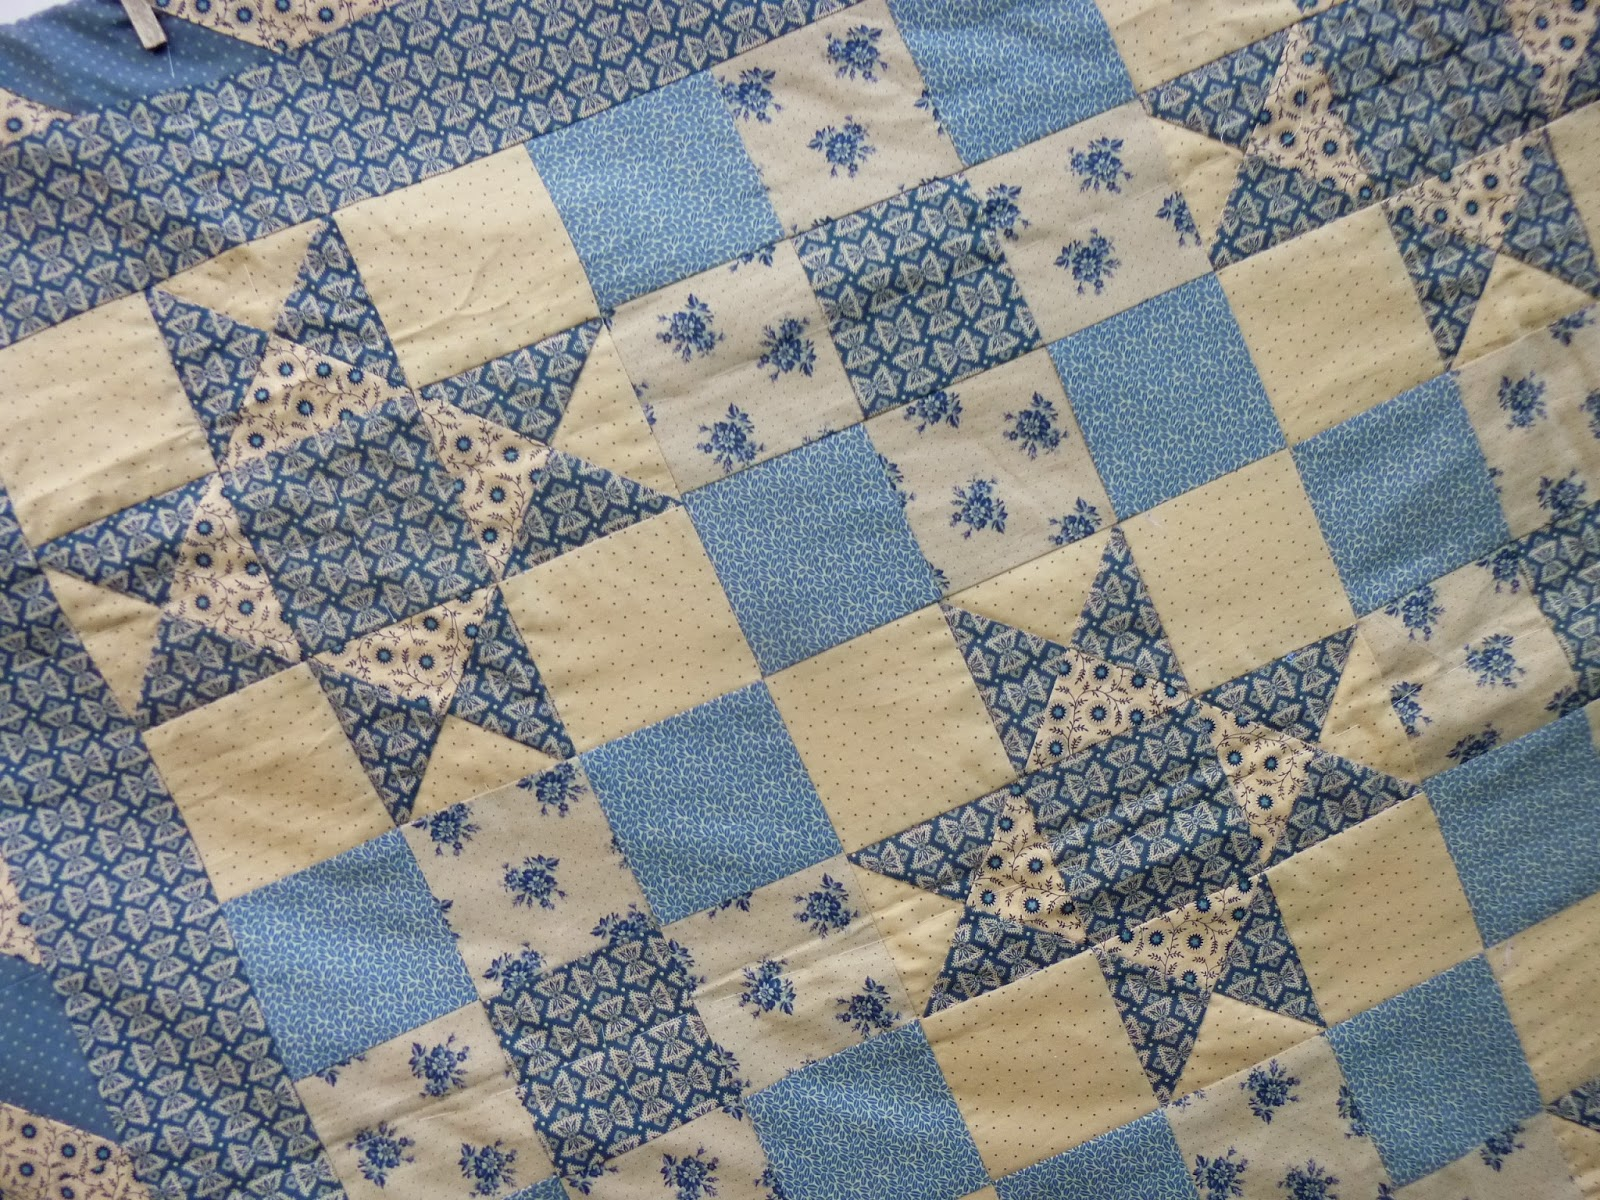 close up of Gettysburg Ohio Star quilt in blue and tan prints